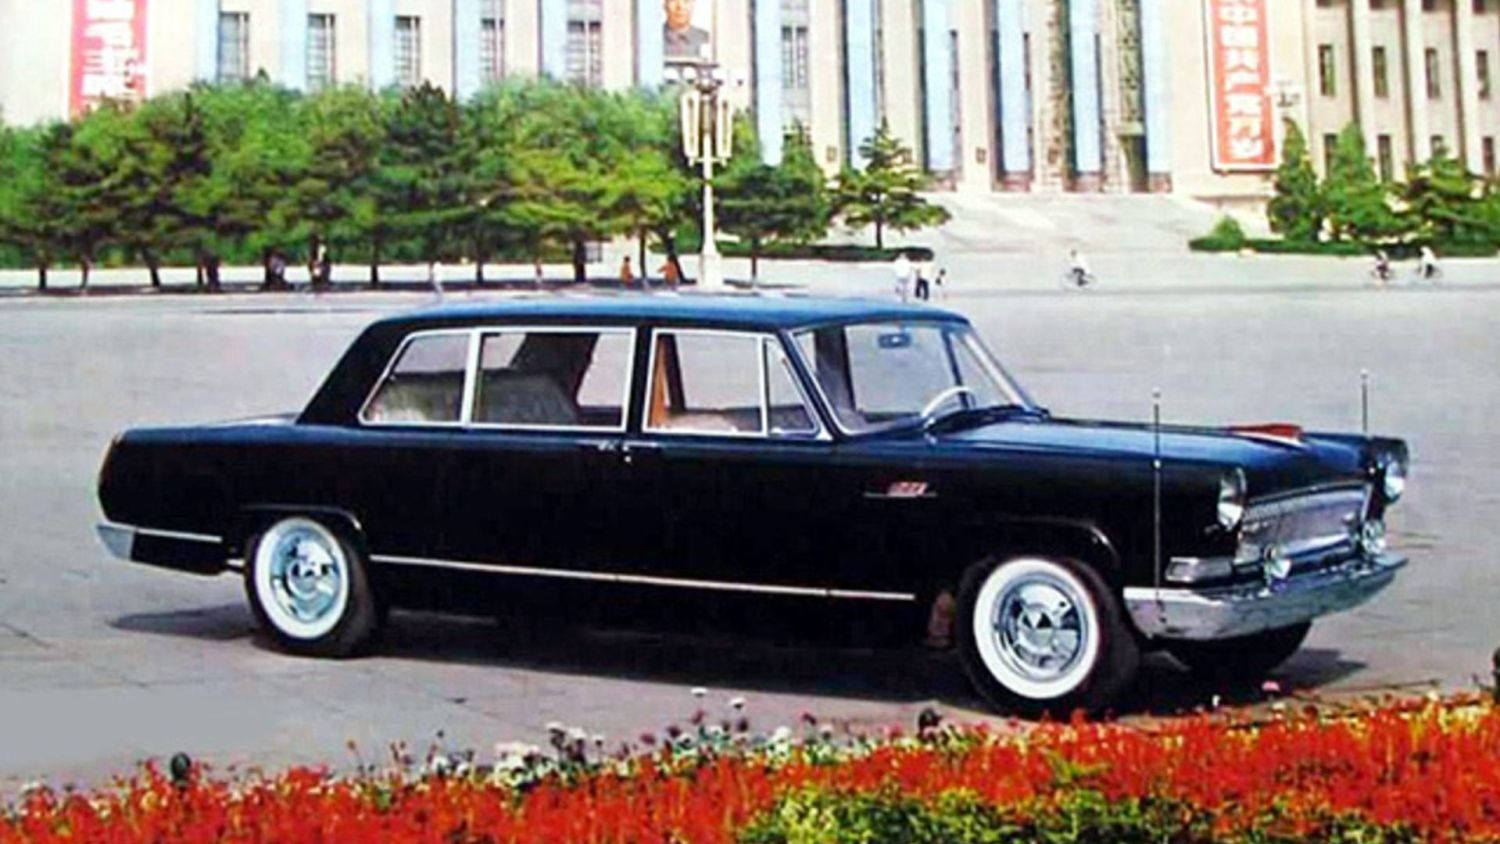 Cars of notorious world leaders